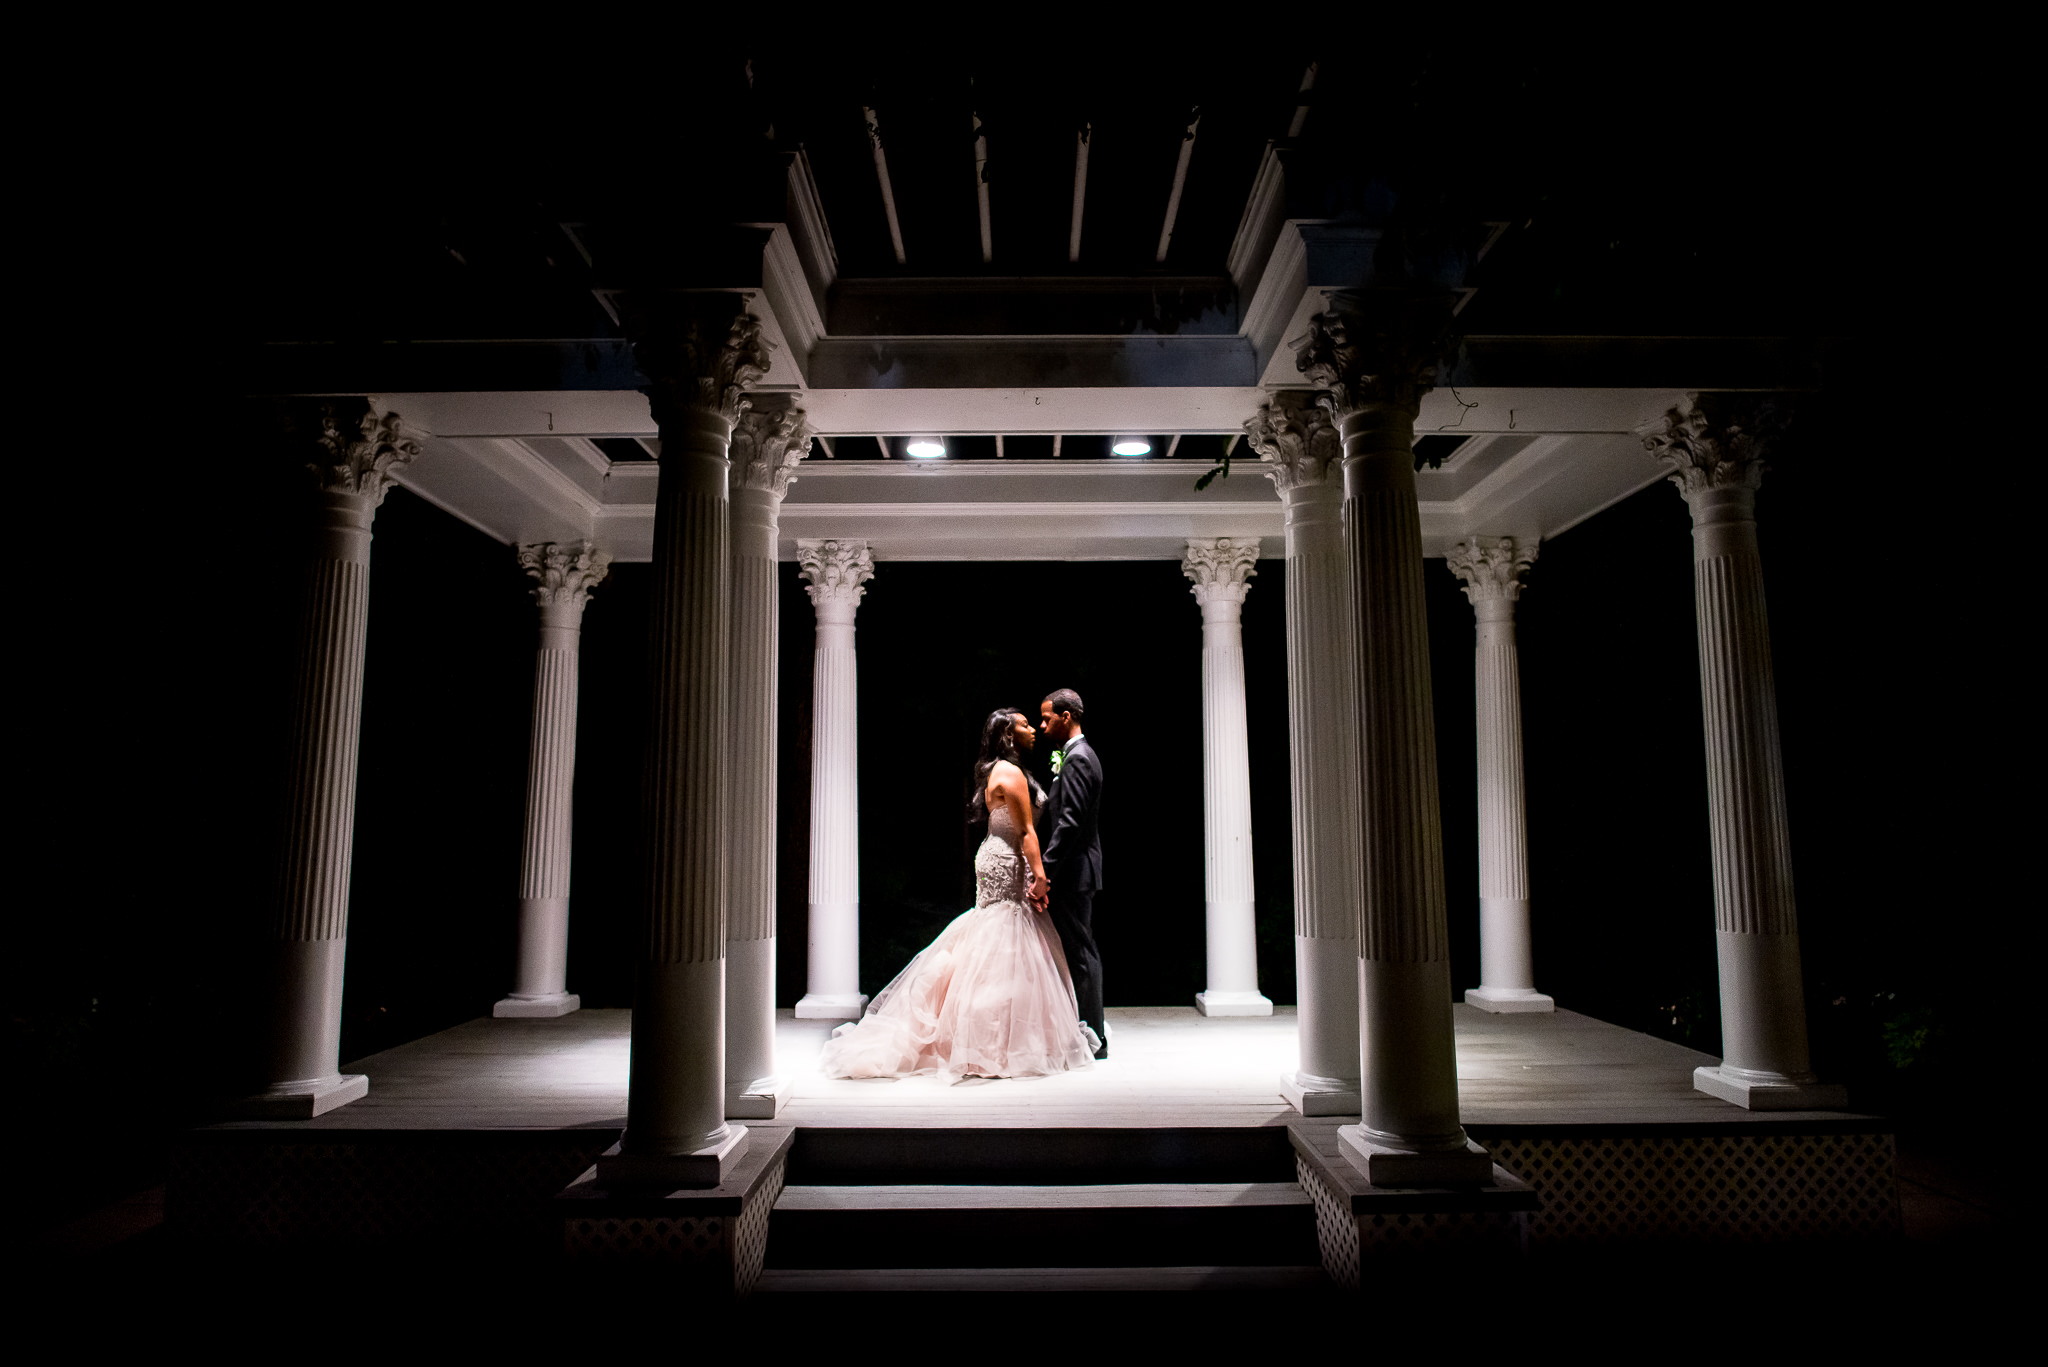 Nighttime bride and groom portrait under gazebo - photo by Adibe Photography